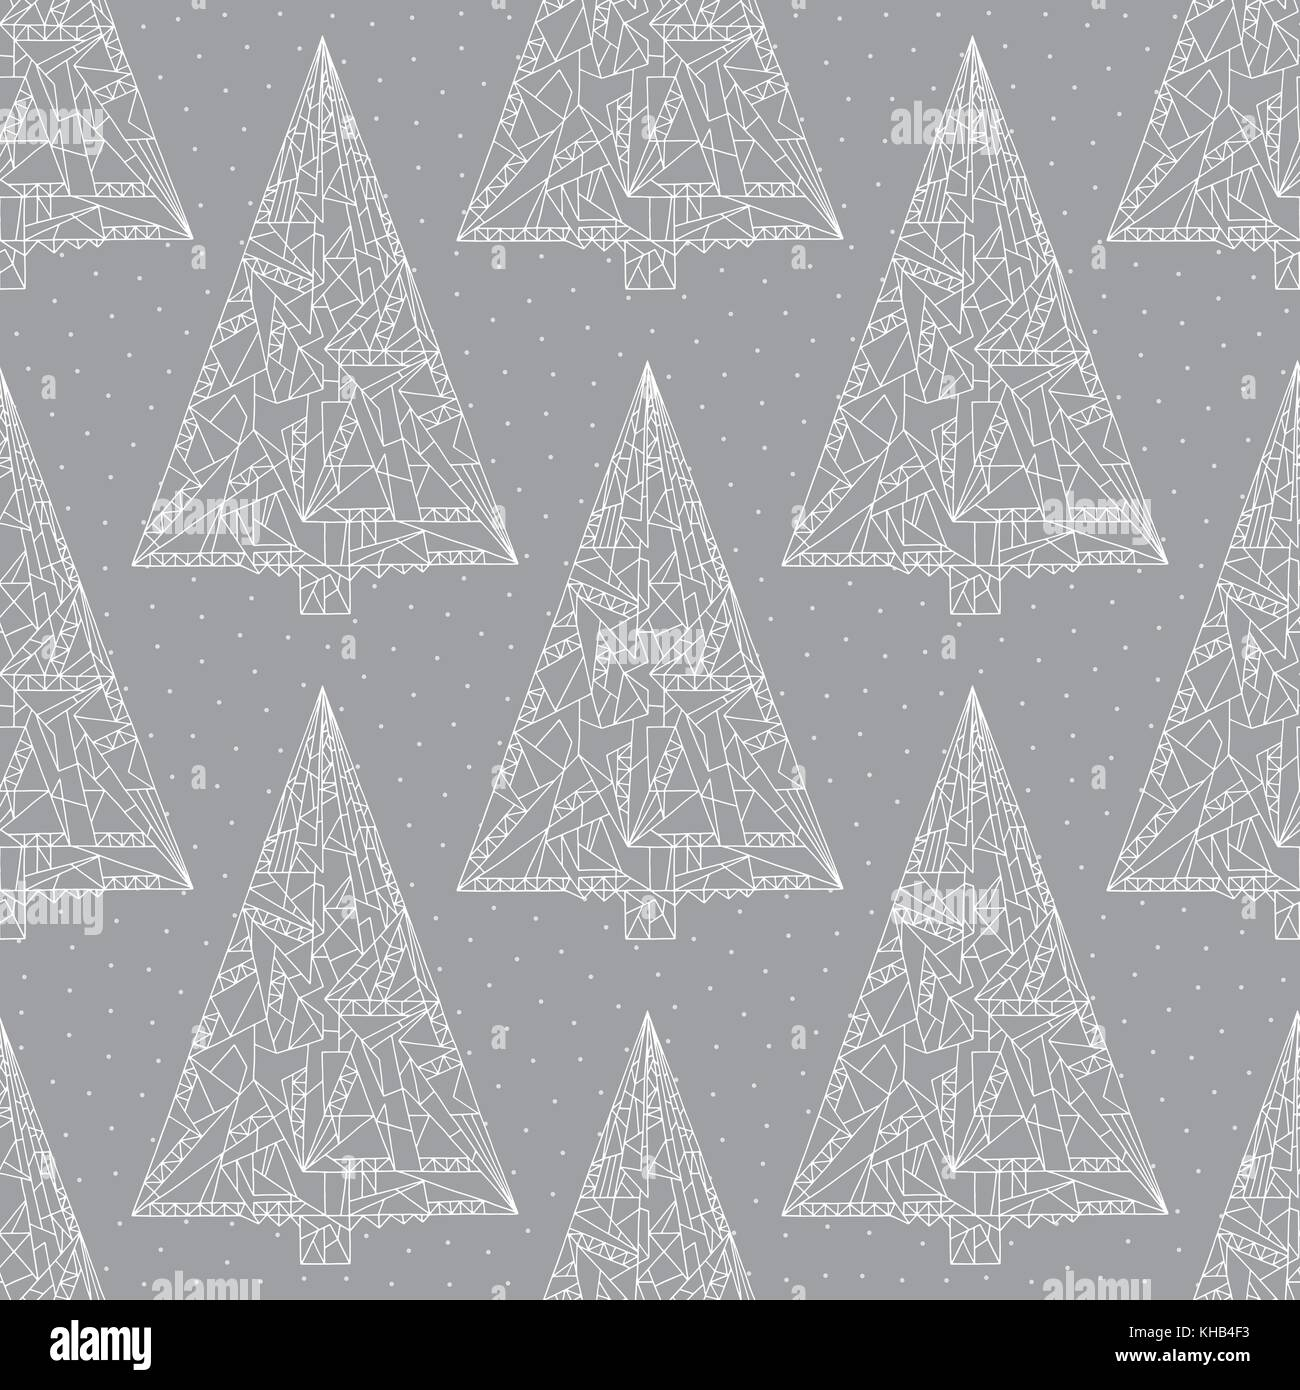 christmas trees pattern abstract xmas pastel colors seamless background KHB4F3